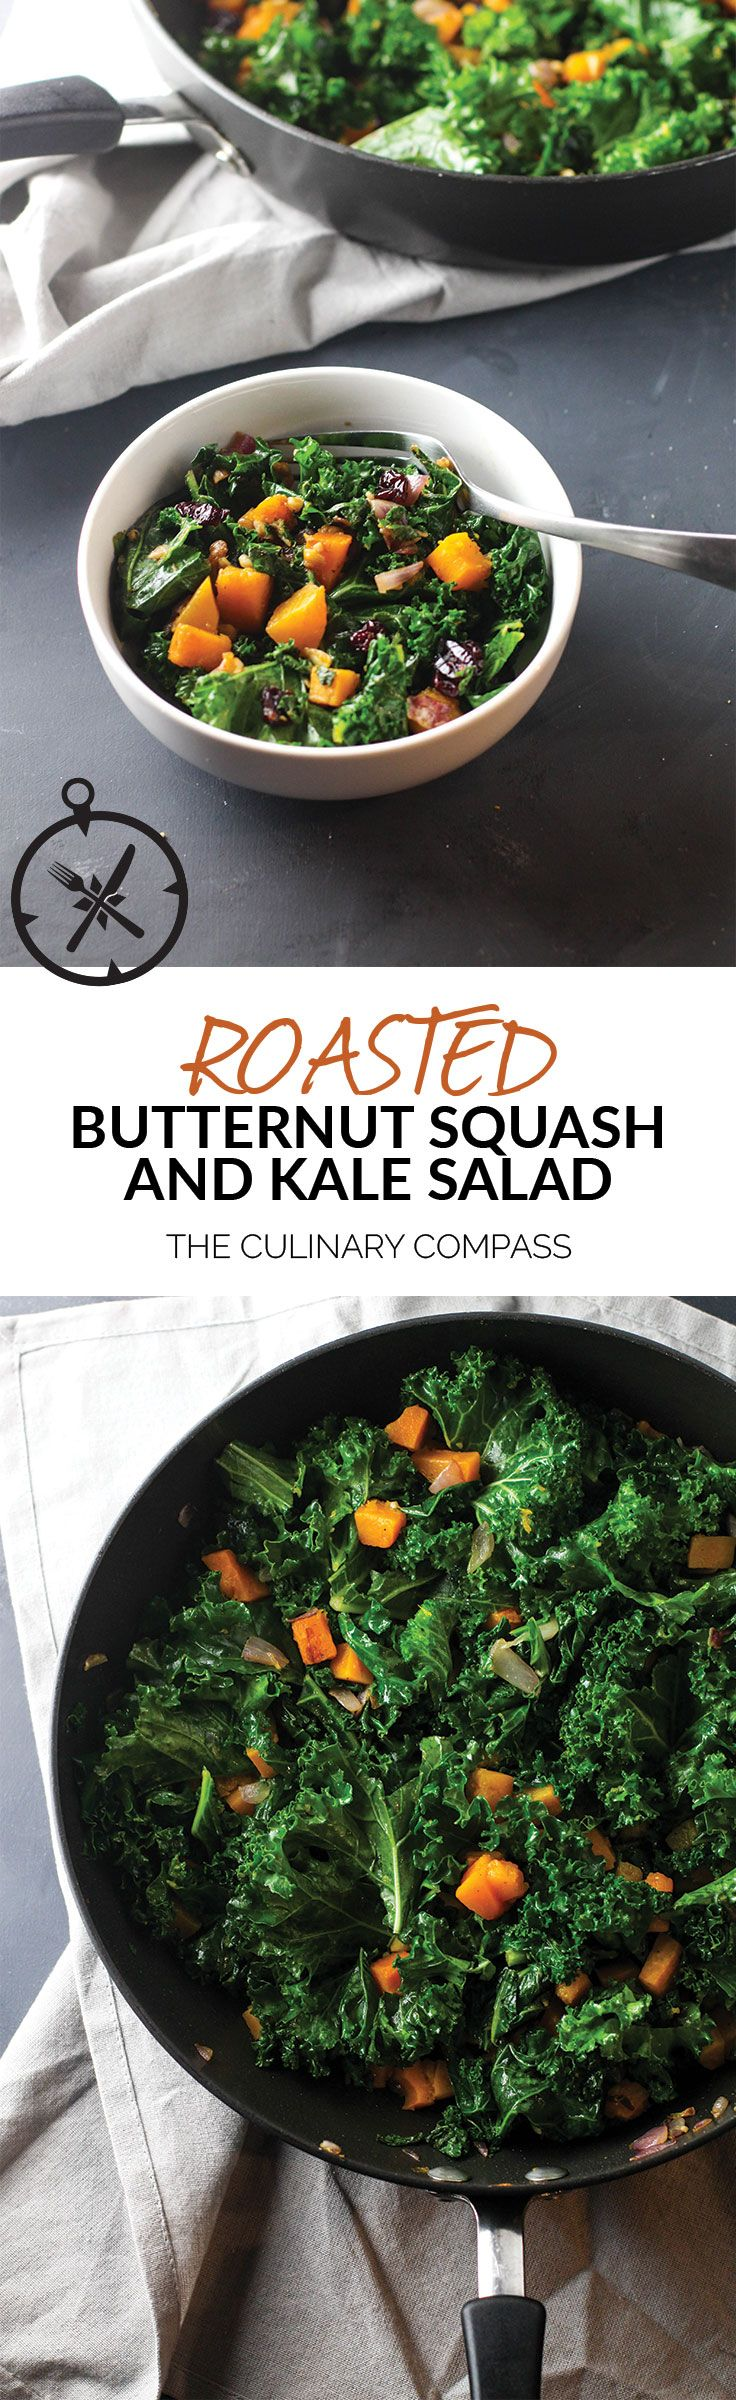 This Roasted Butternut Squash and Kale Salad is so easy to throw together and a perfect salad for cold winter nights! via @culinarycompass